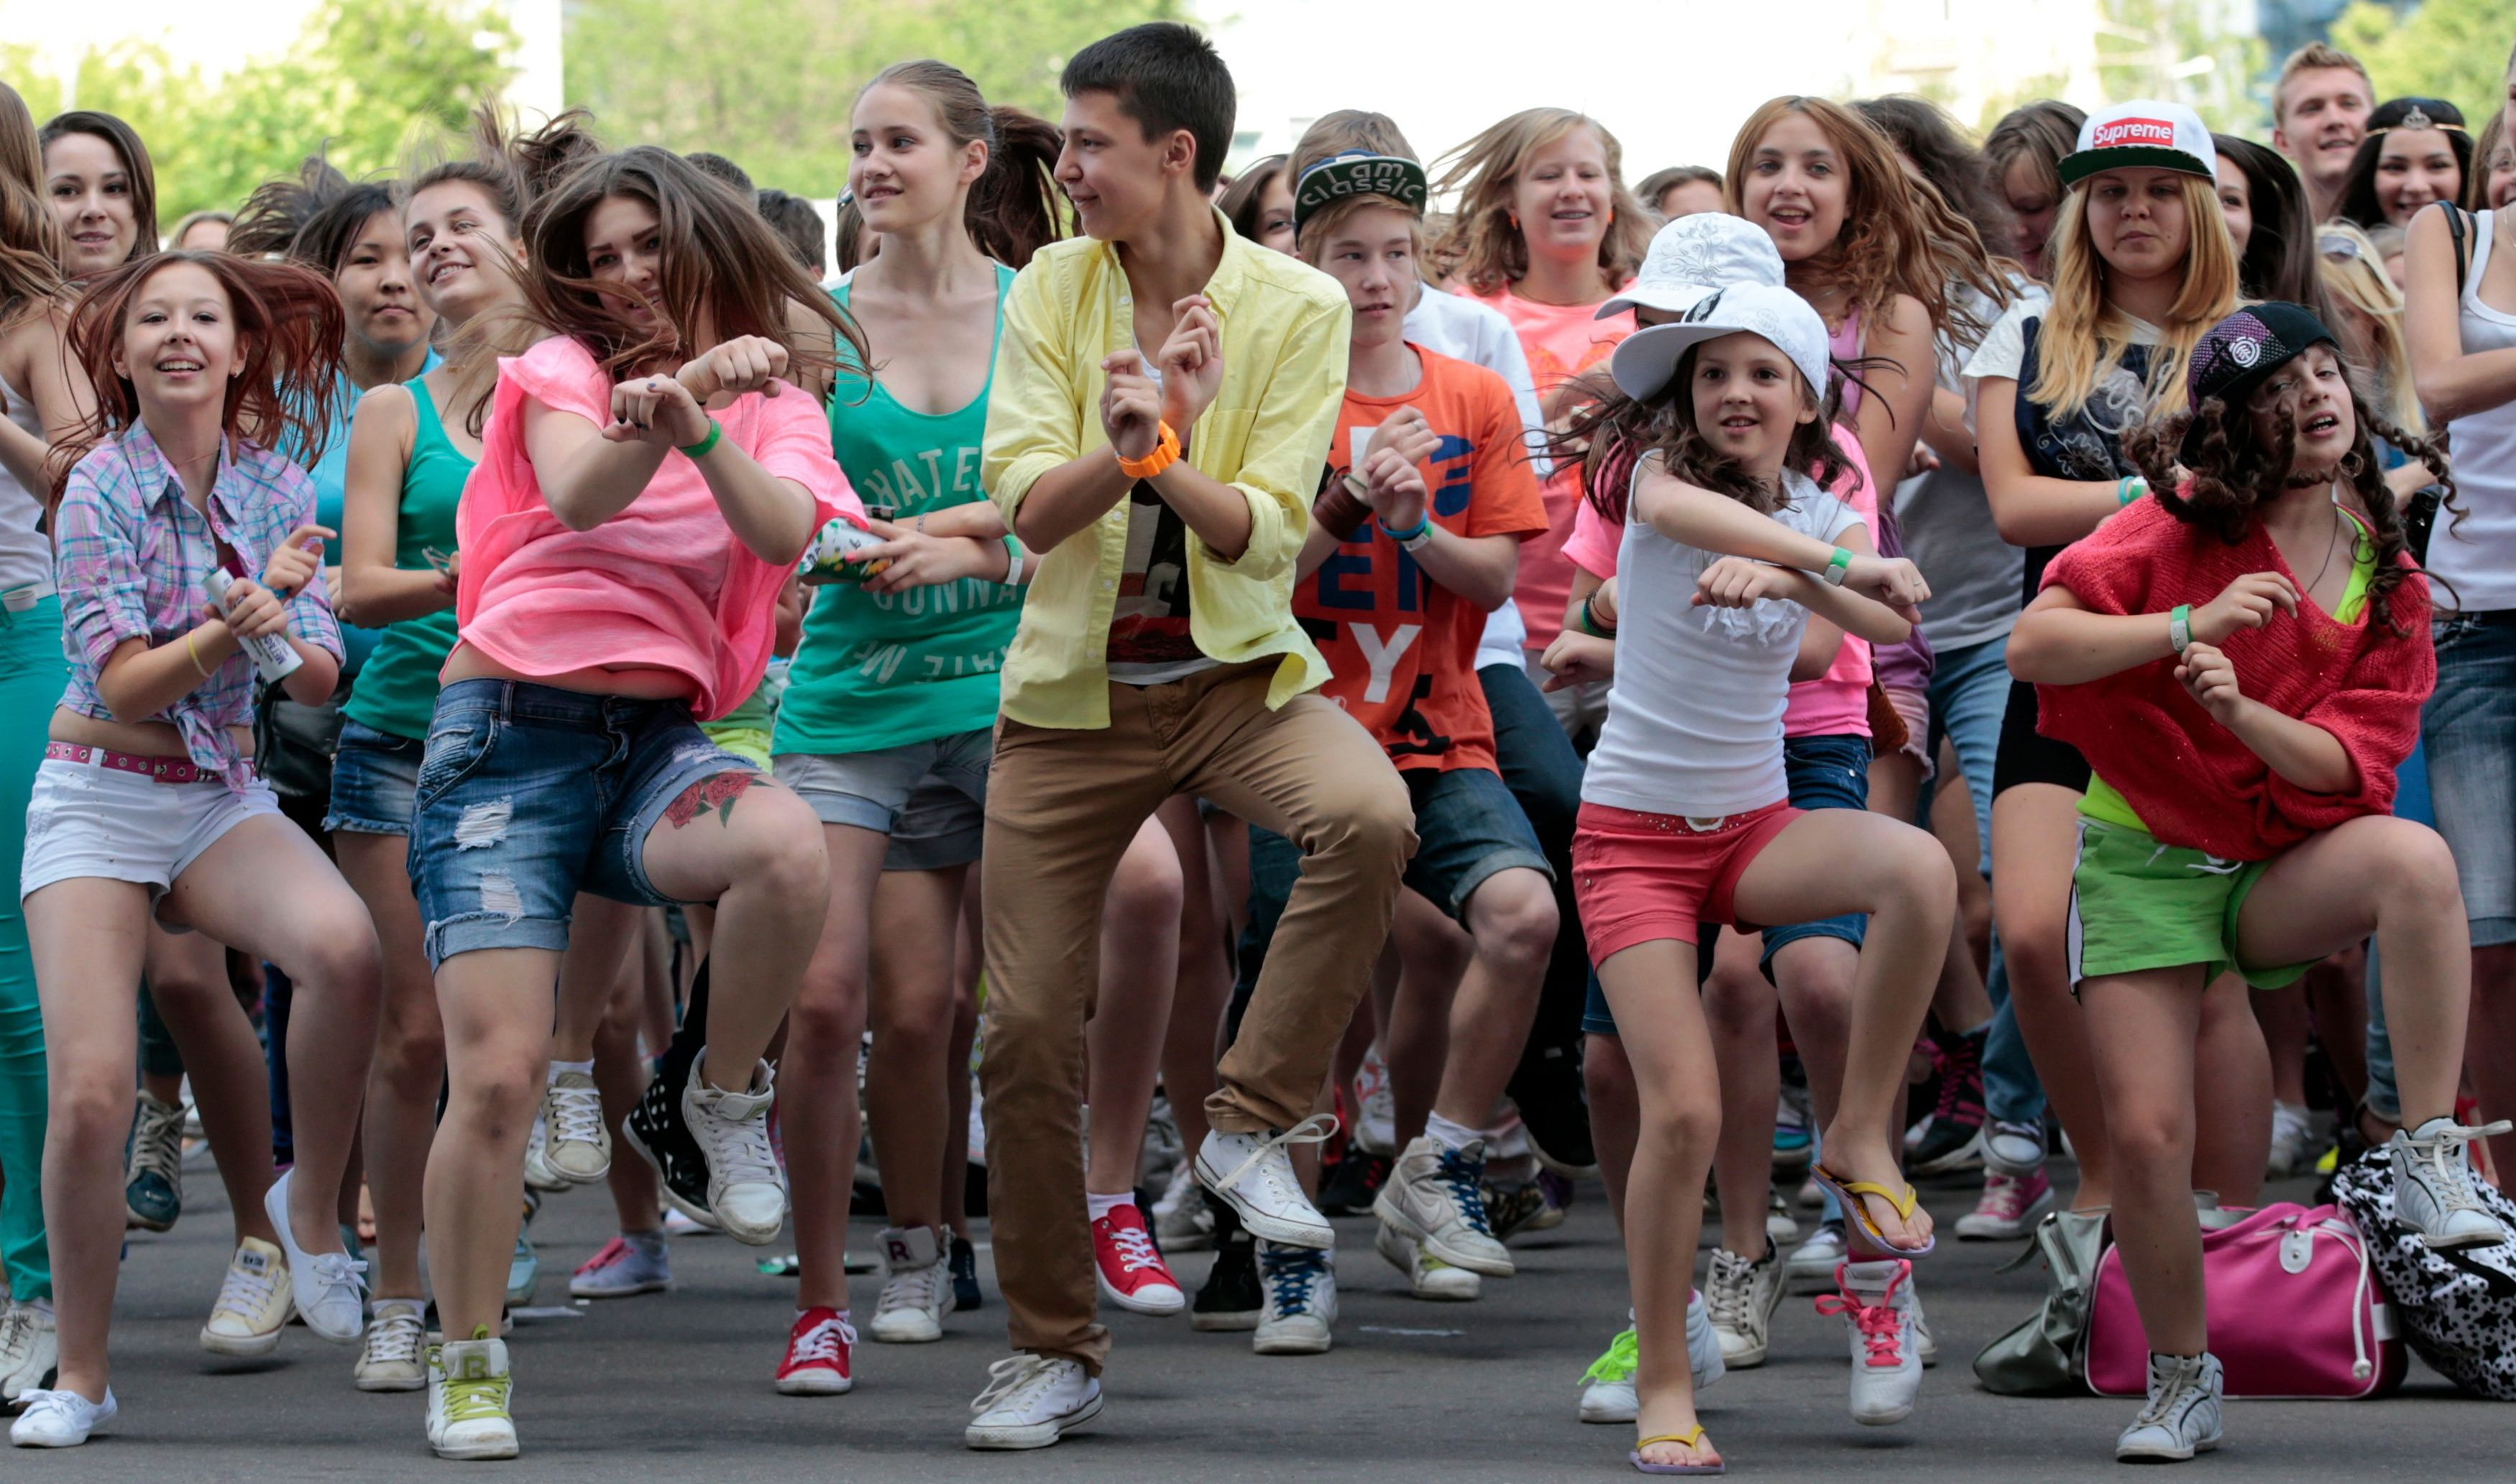 People perform a Gangnam style dance during a flash mob before the arrival of South Korean rapper Psy at the Olympiyskiy (Olympic) sports and entertainment complex in Moscow, June 6, 2013. Psy is in Moscow to take part in the MUZ-TV music awards ceremony on June 7, according to local media. REUTERS/Tatyana Makeyeva (RUSSIA  - Tags: ENTERTAINMENT SOCIETY) - GM1E967026201